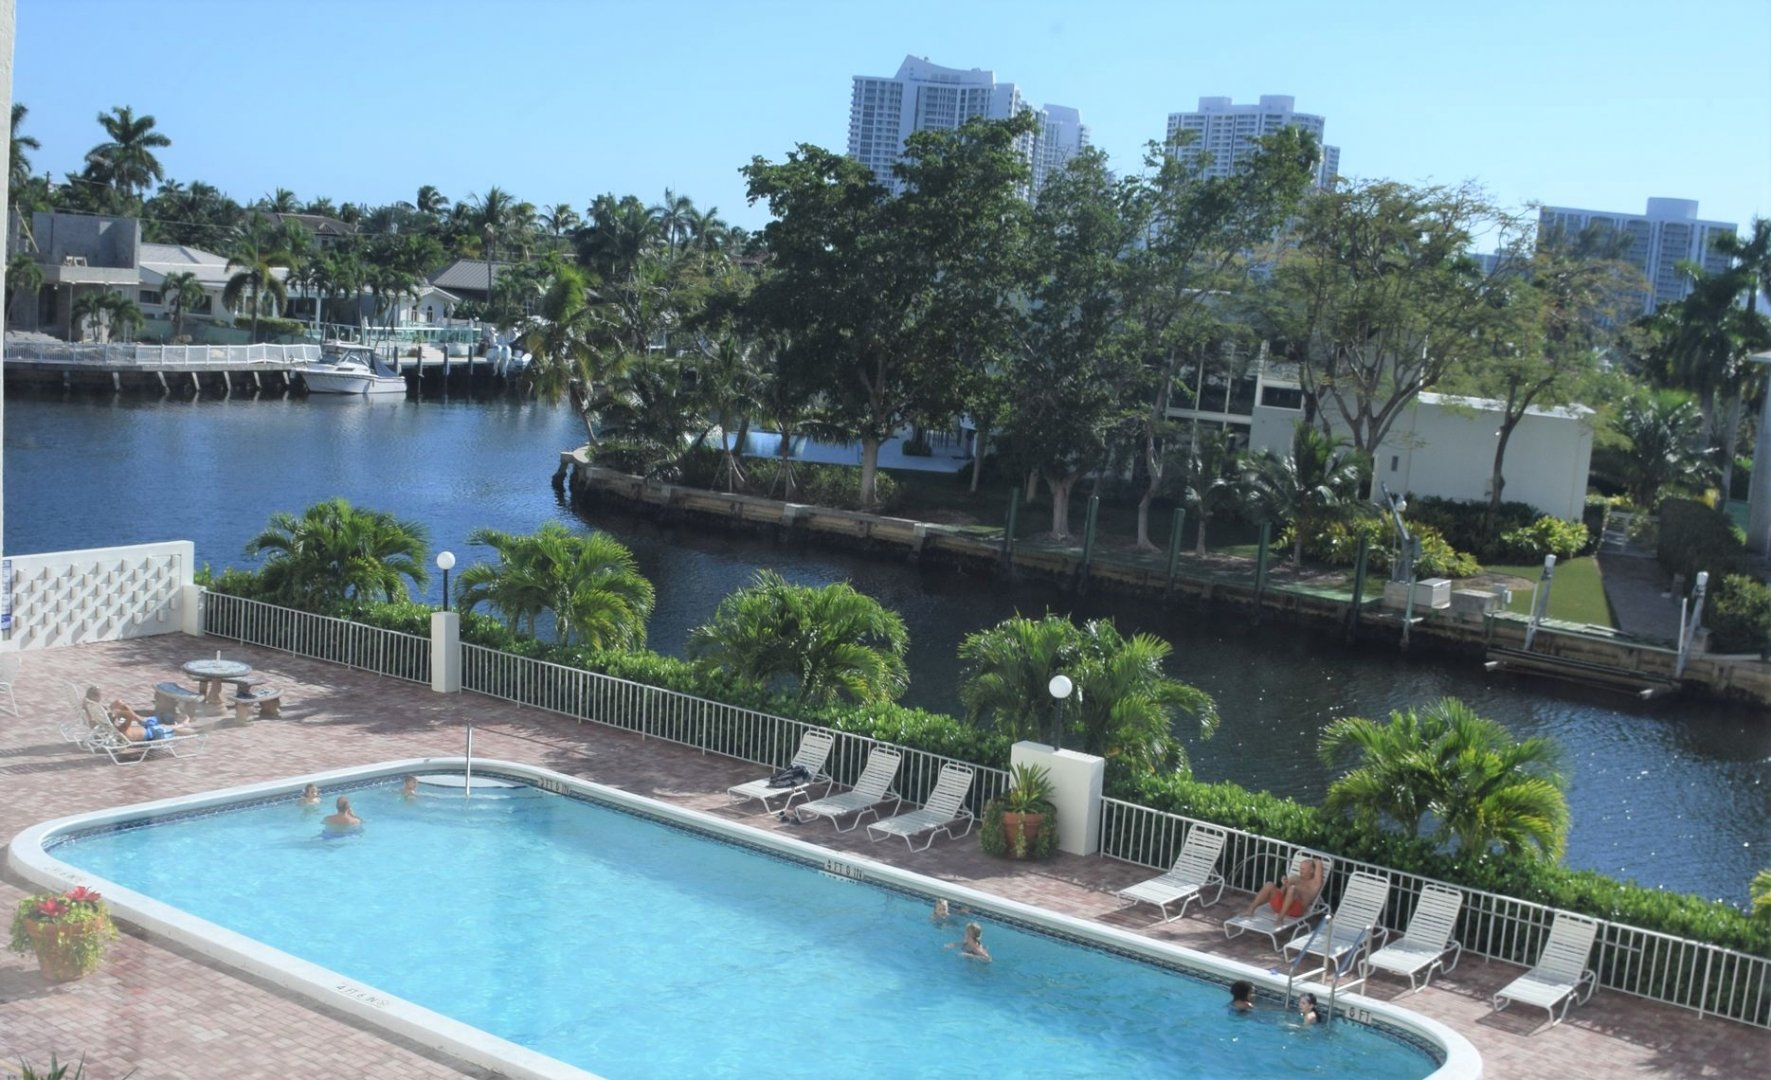 401 Golden Isles Dr, Unit #313 Luxury Real Estate